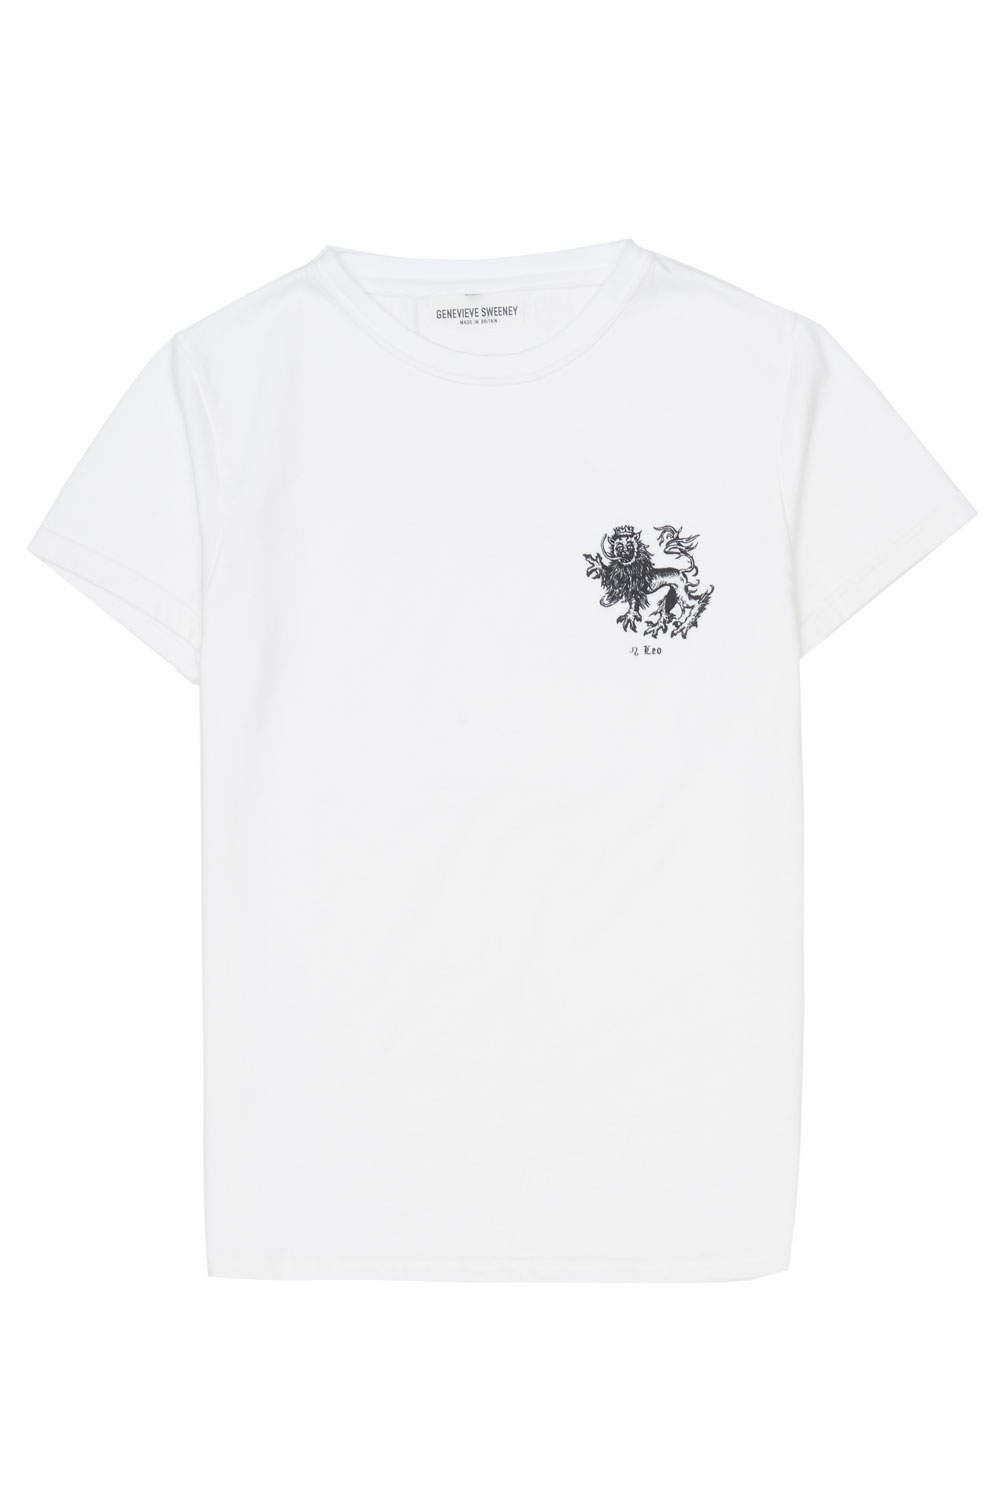 Adults Zodiac Tshirt Made in Britain Leo